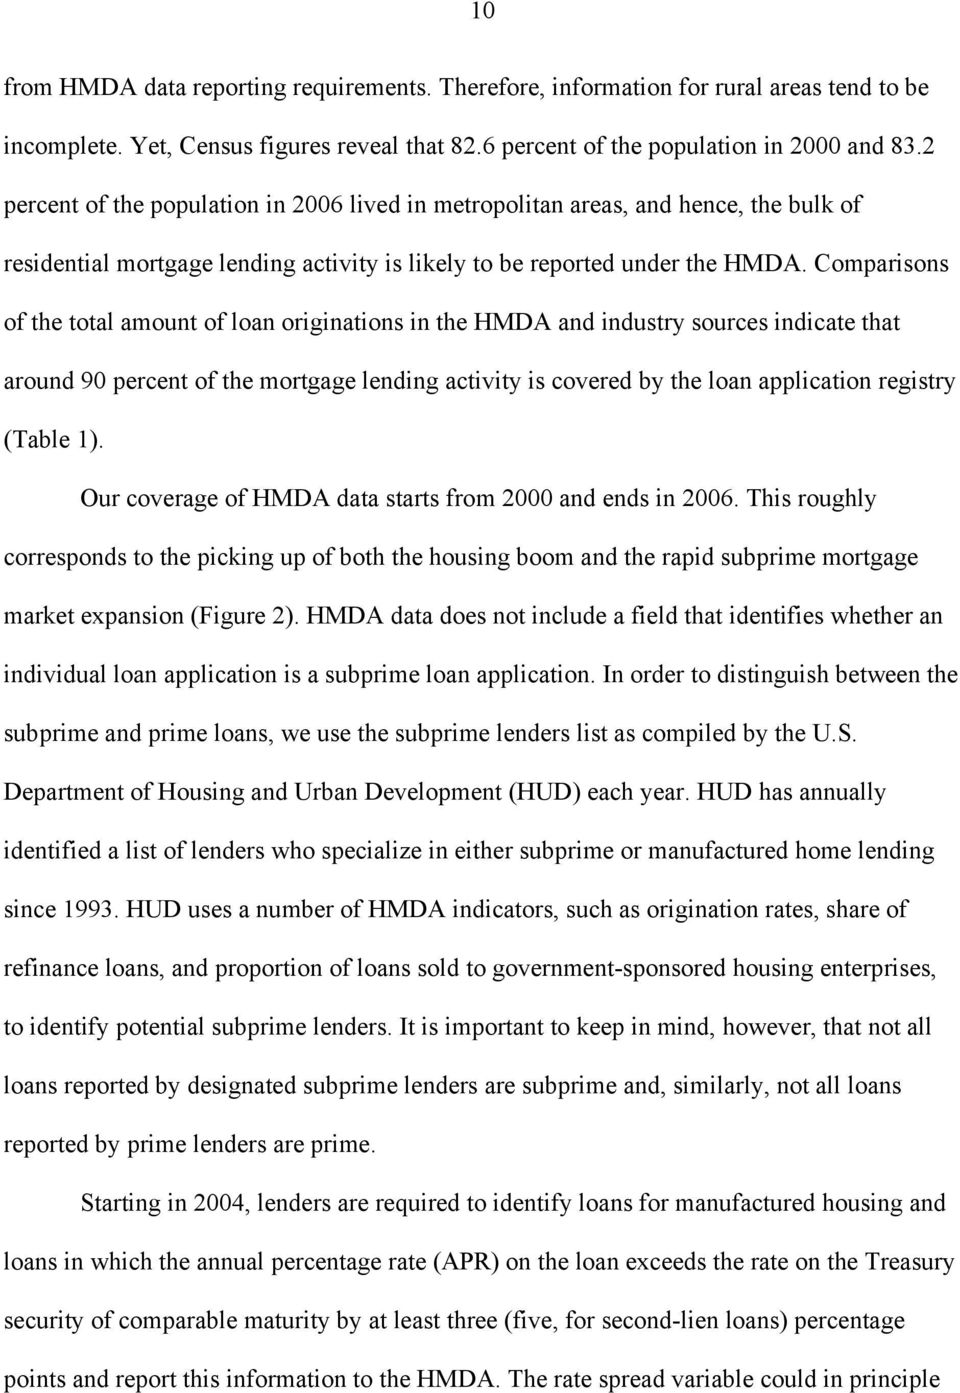 Comparisons of the total amount of loan originations in the HMDA and industry sources indicate that around 90 percent of the mortgage lending activity is covered by the loan application registry